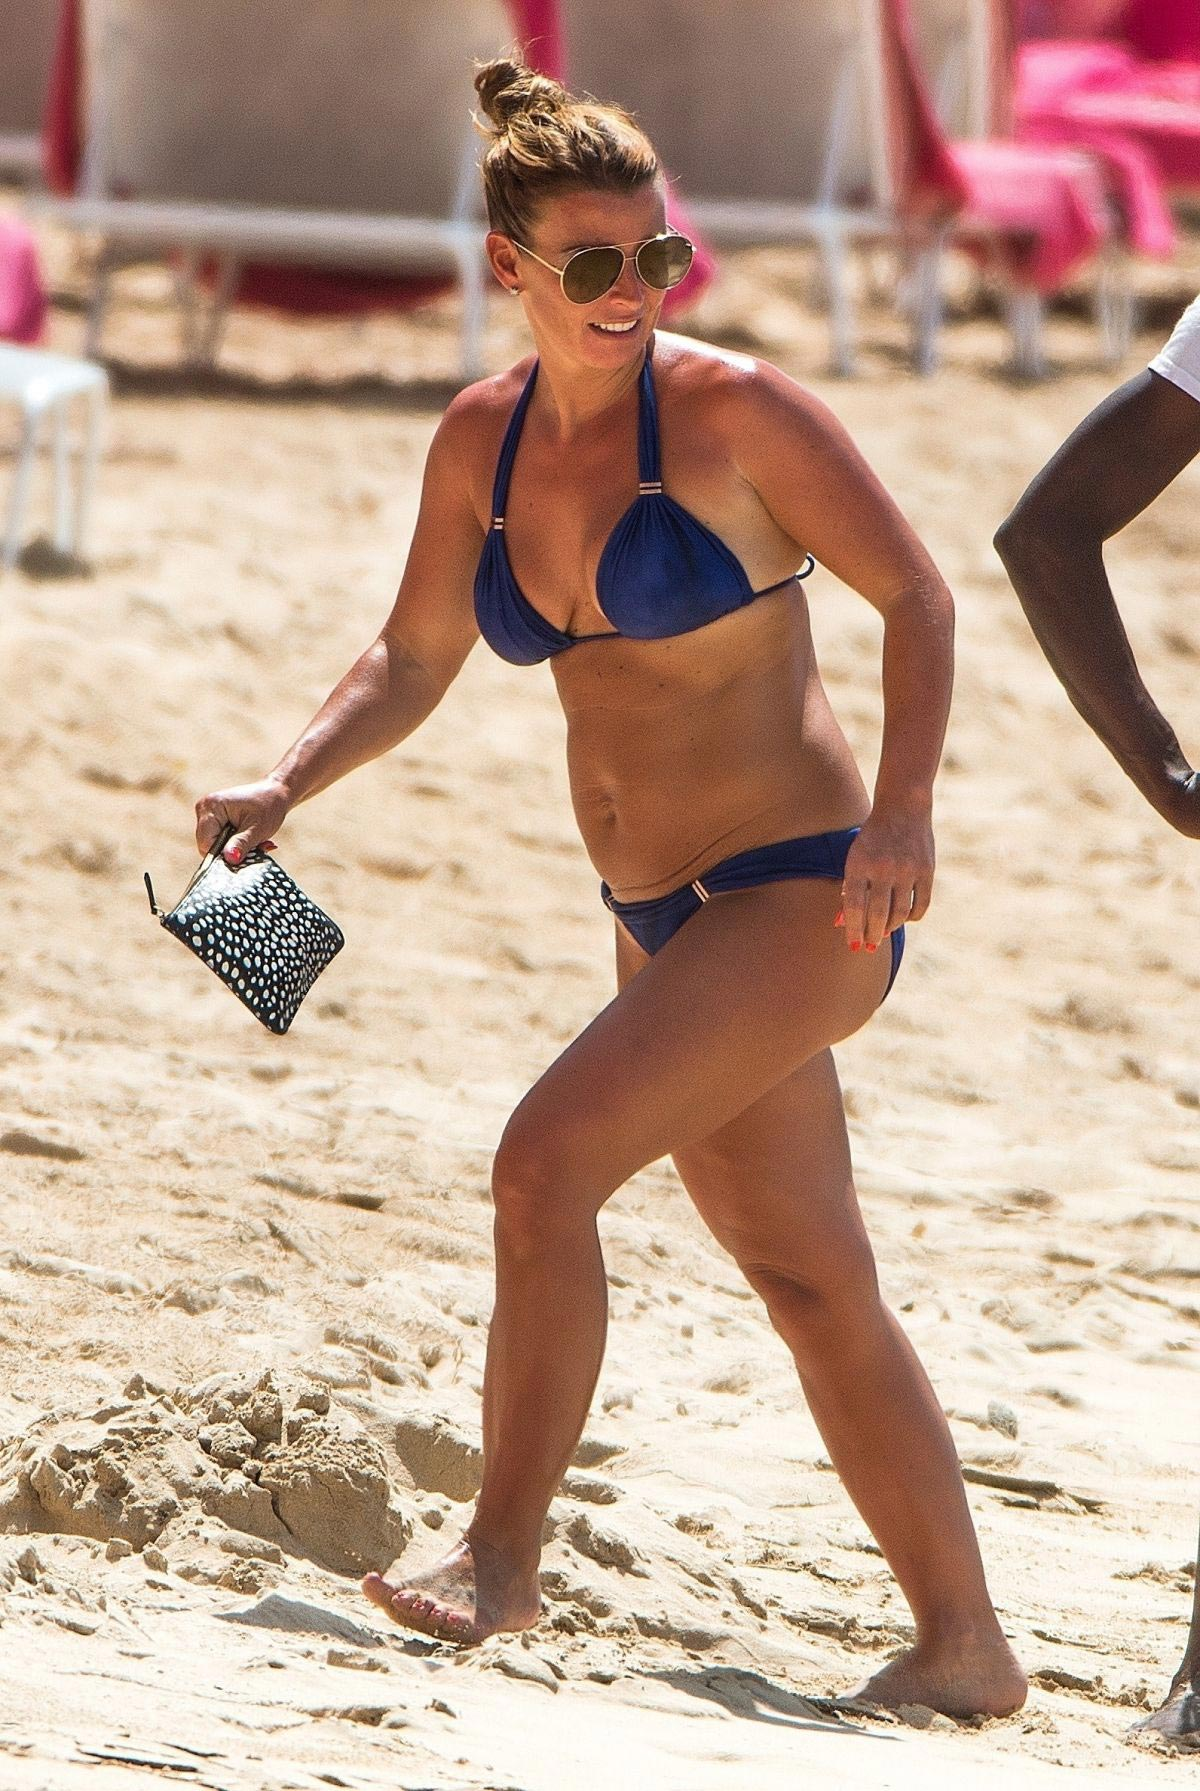 Cleavage Coleen Rooney nudes (86 photos), Pussy, Paparazzi, Instagram, legs 2020